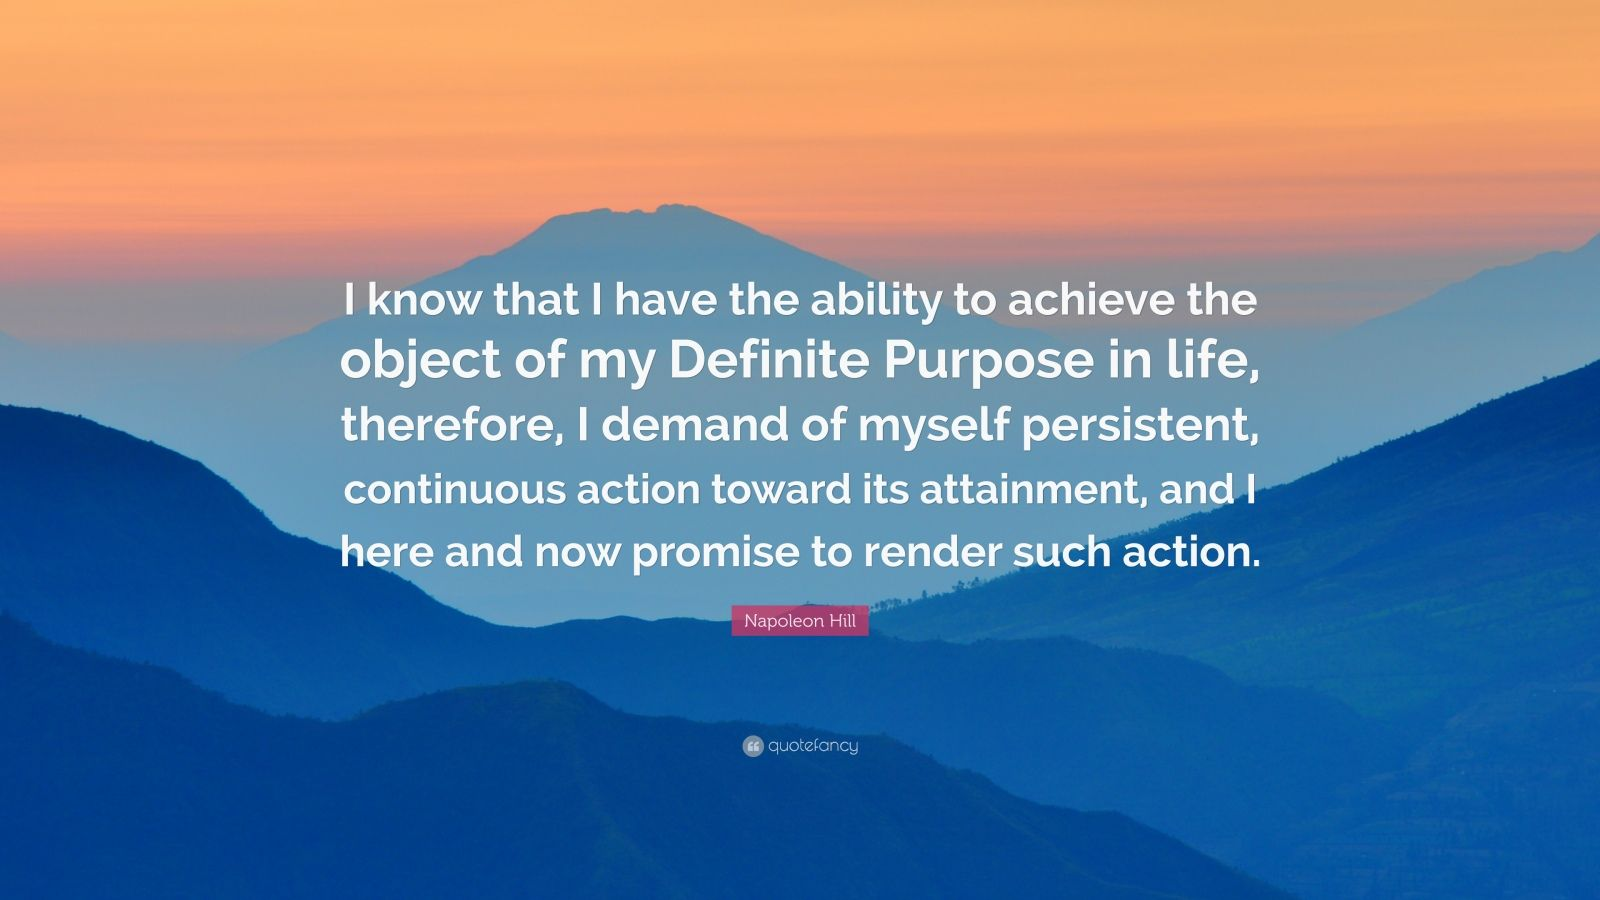 """Napoleon Hill Quote: """"I know that I have the ability to achieve the object of my Definite Purpose in life, therefore, I demand of myself persistent, continuous action toward its attainment, and I here and now promise to render such action."""""""